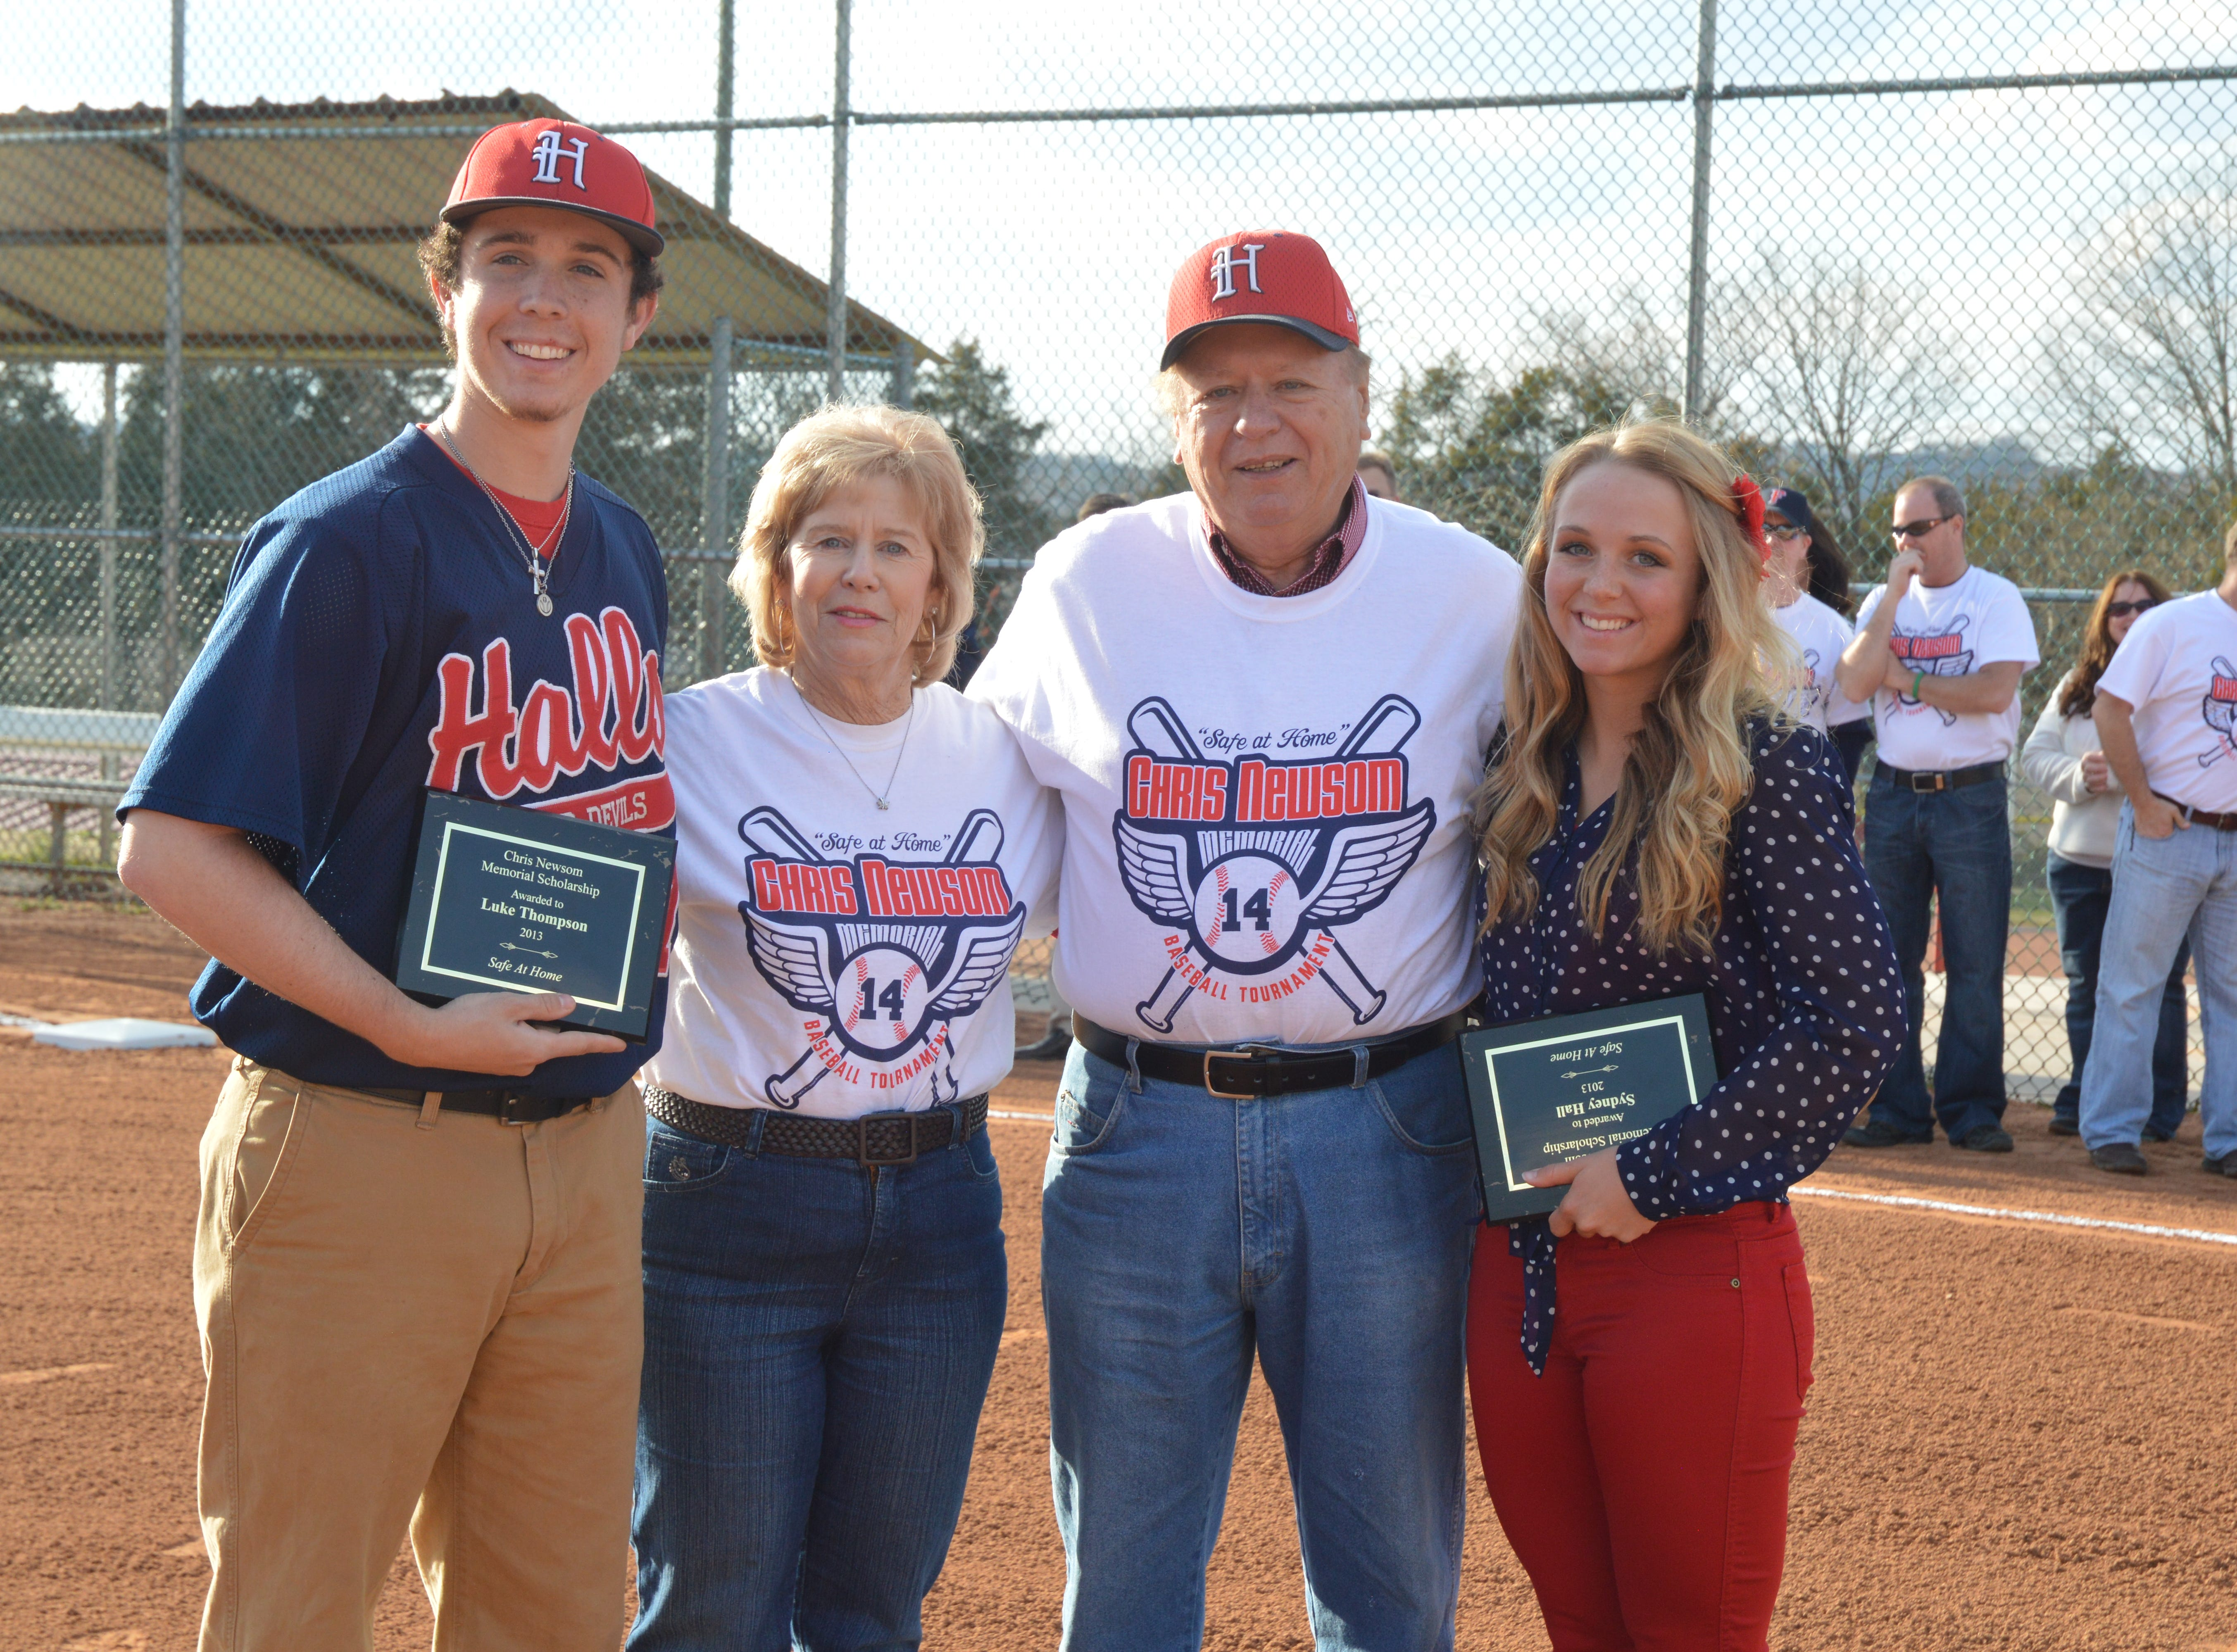 Luke Thompson, left, and Sydney Hall were honored as the 2013 Chris Newsom scholarship winners. They are pictured with Hugh and Mary Newsom.